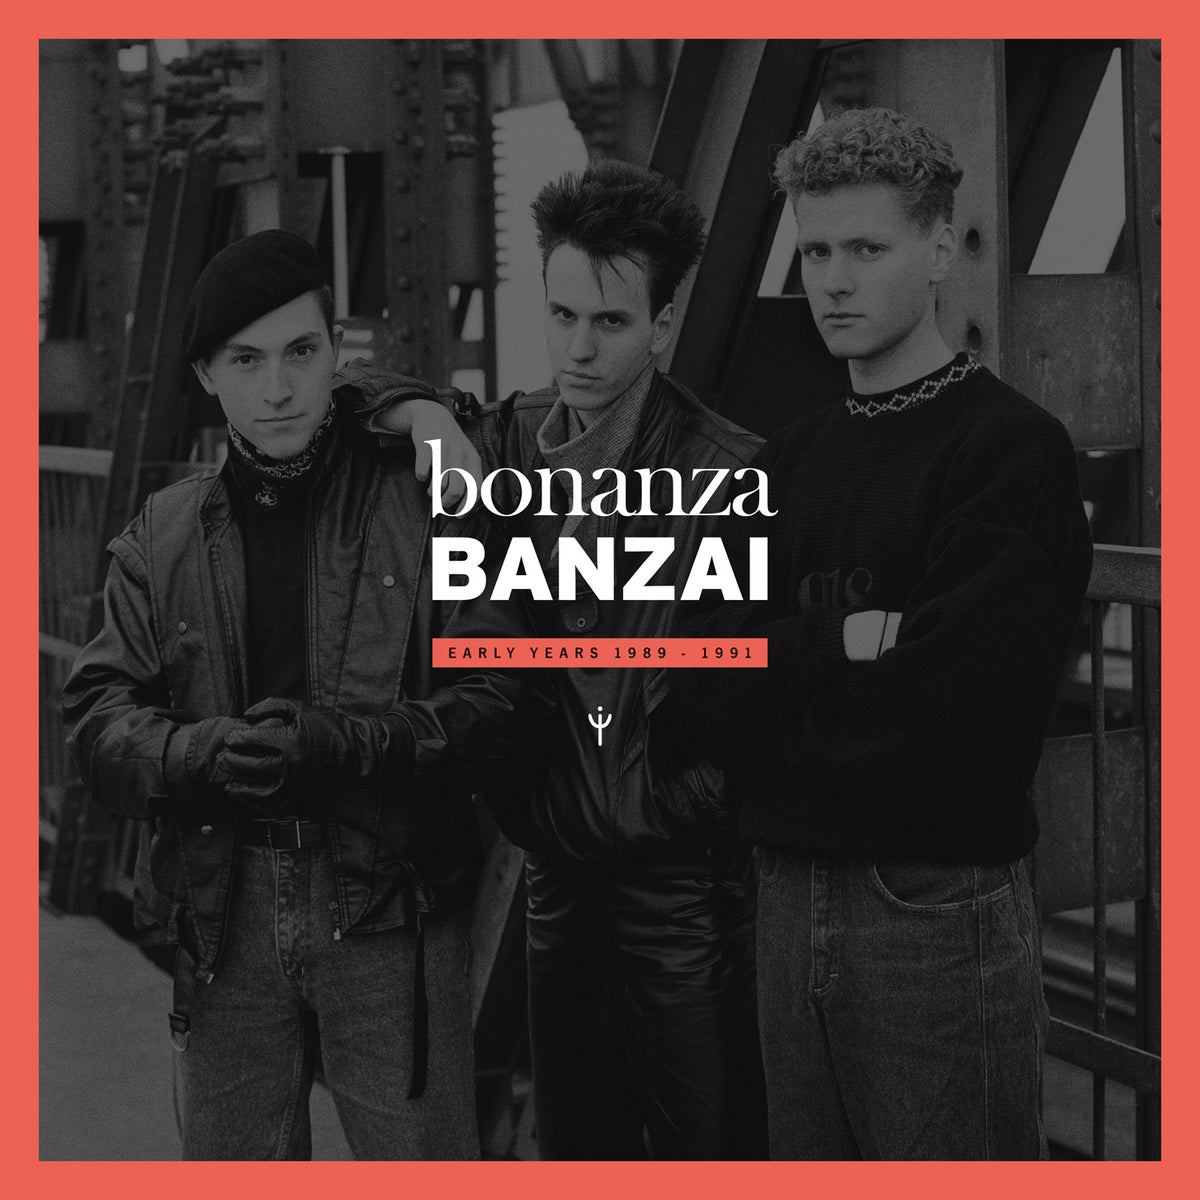 Image of Bonanza Banzai - Early Years 1989 - 1991 2LP